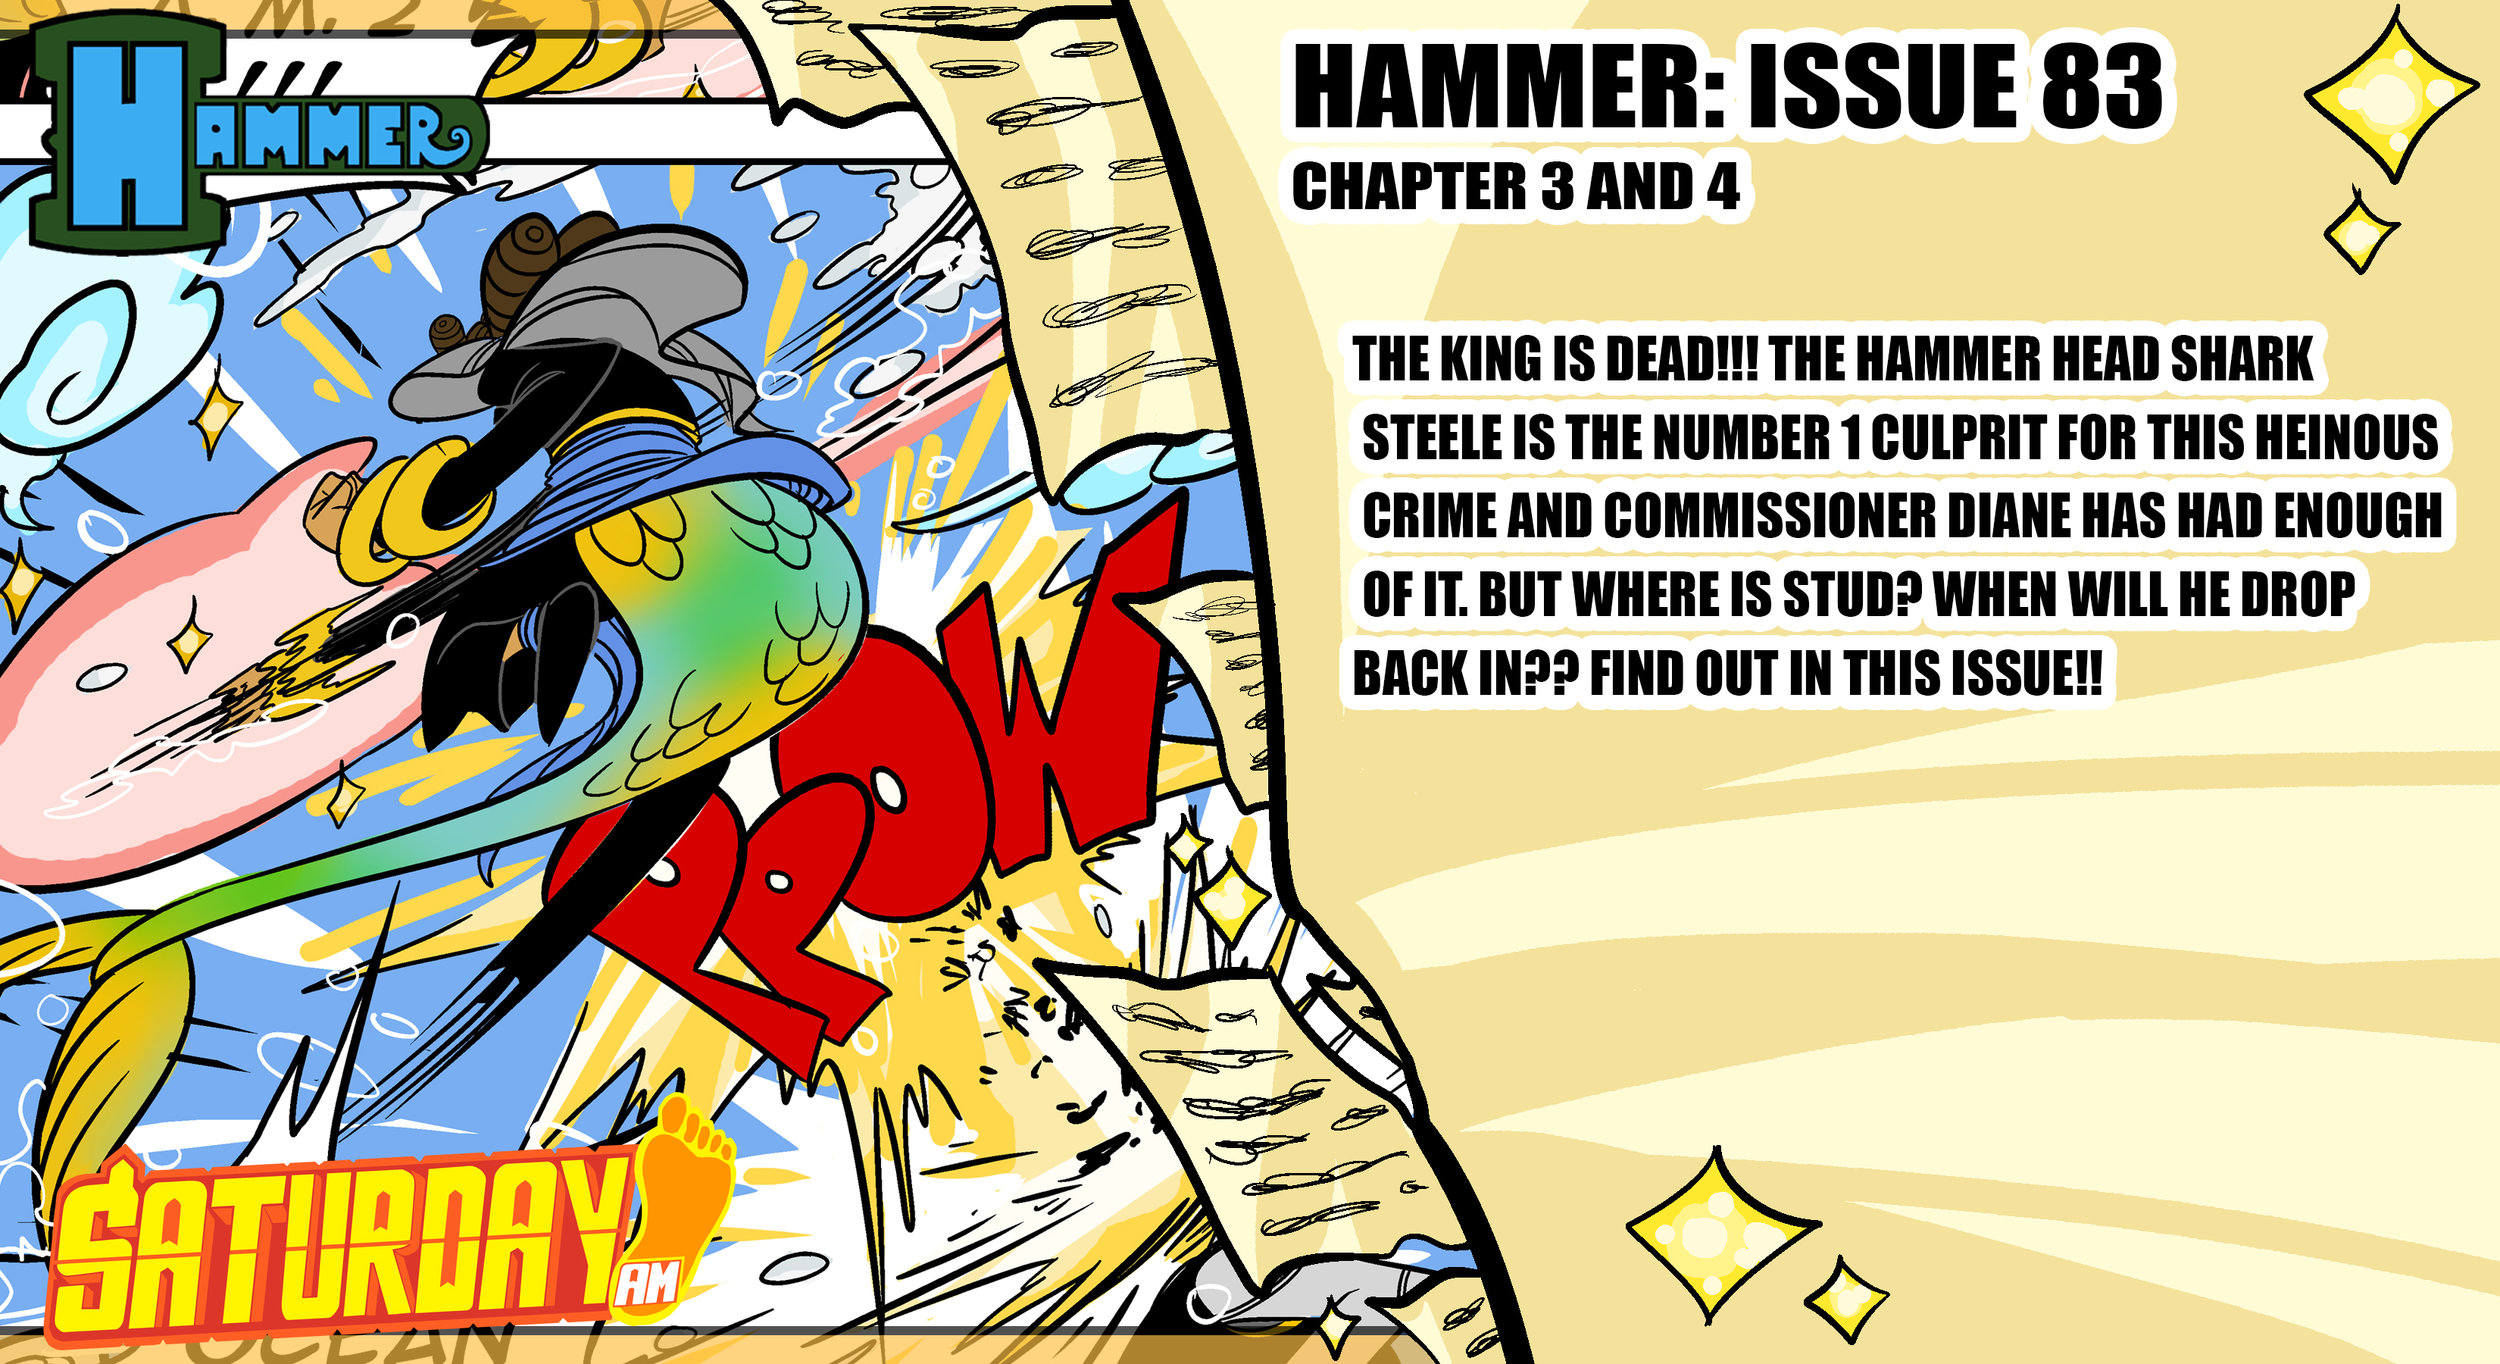 HAMMER WEBSITE_LATEST ISSUE GRAPHIC #83.jpg